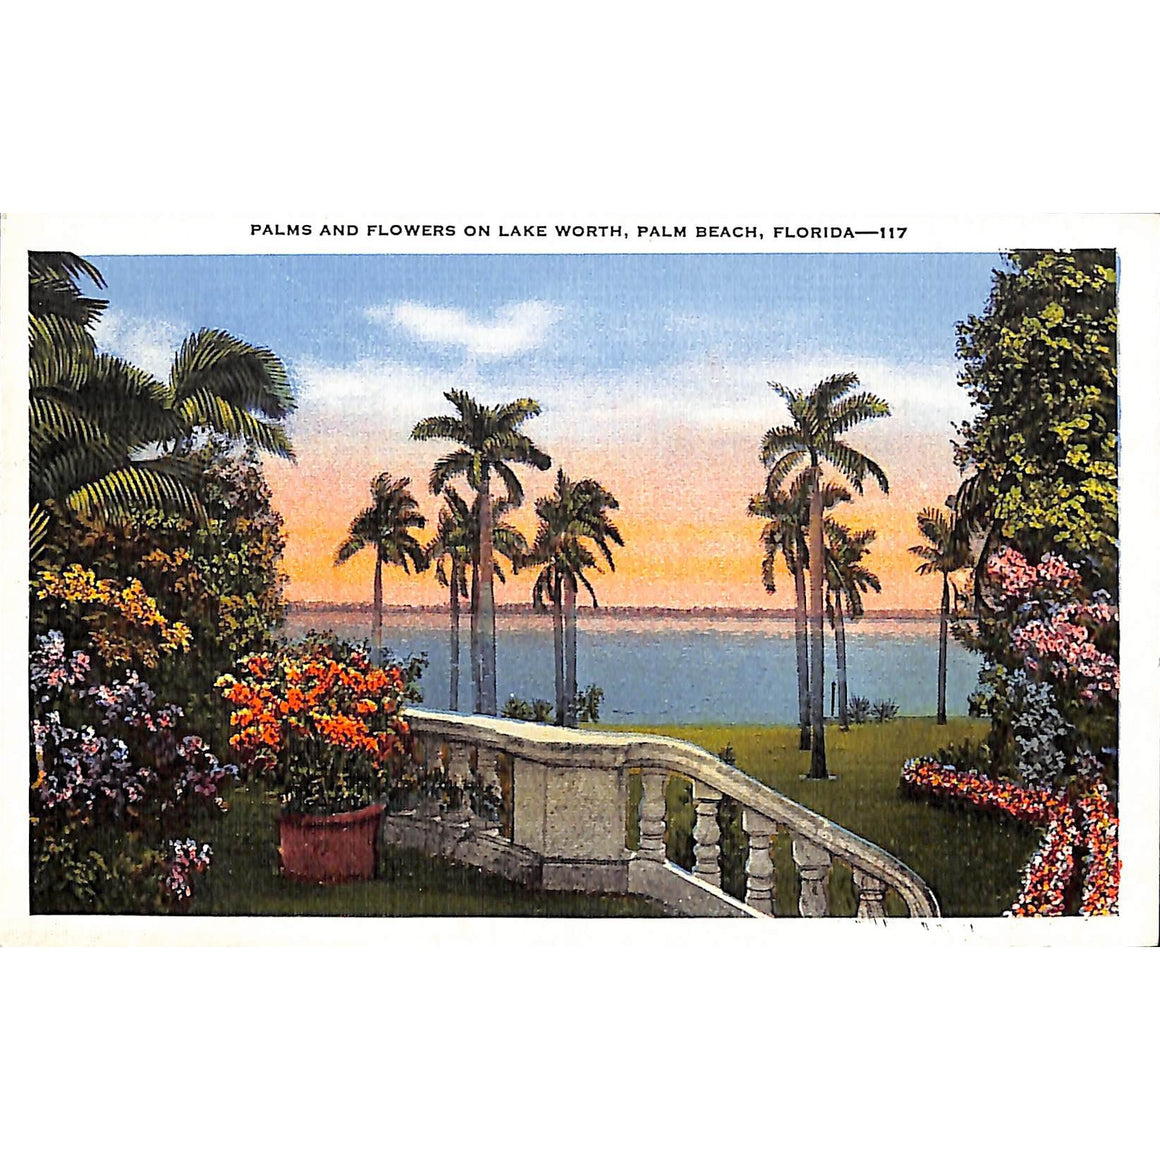 Palms and Flowers on Lake Worth, Palm Beach Post Card